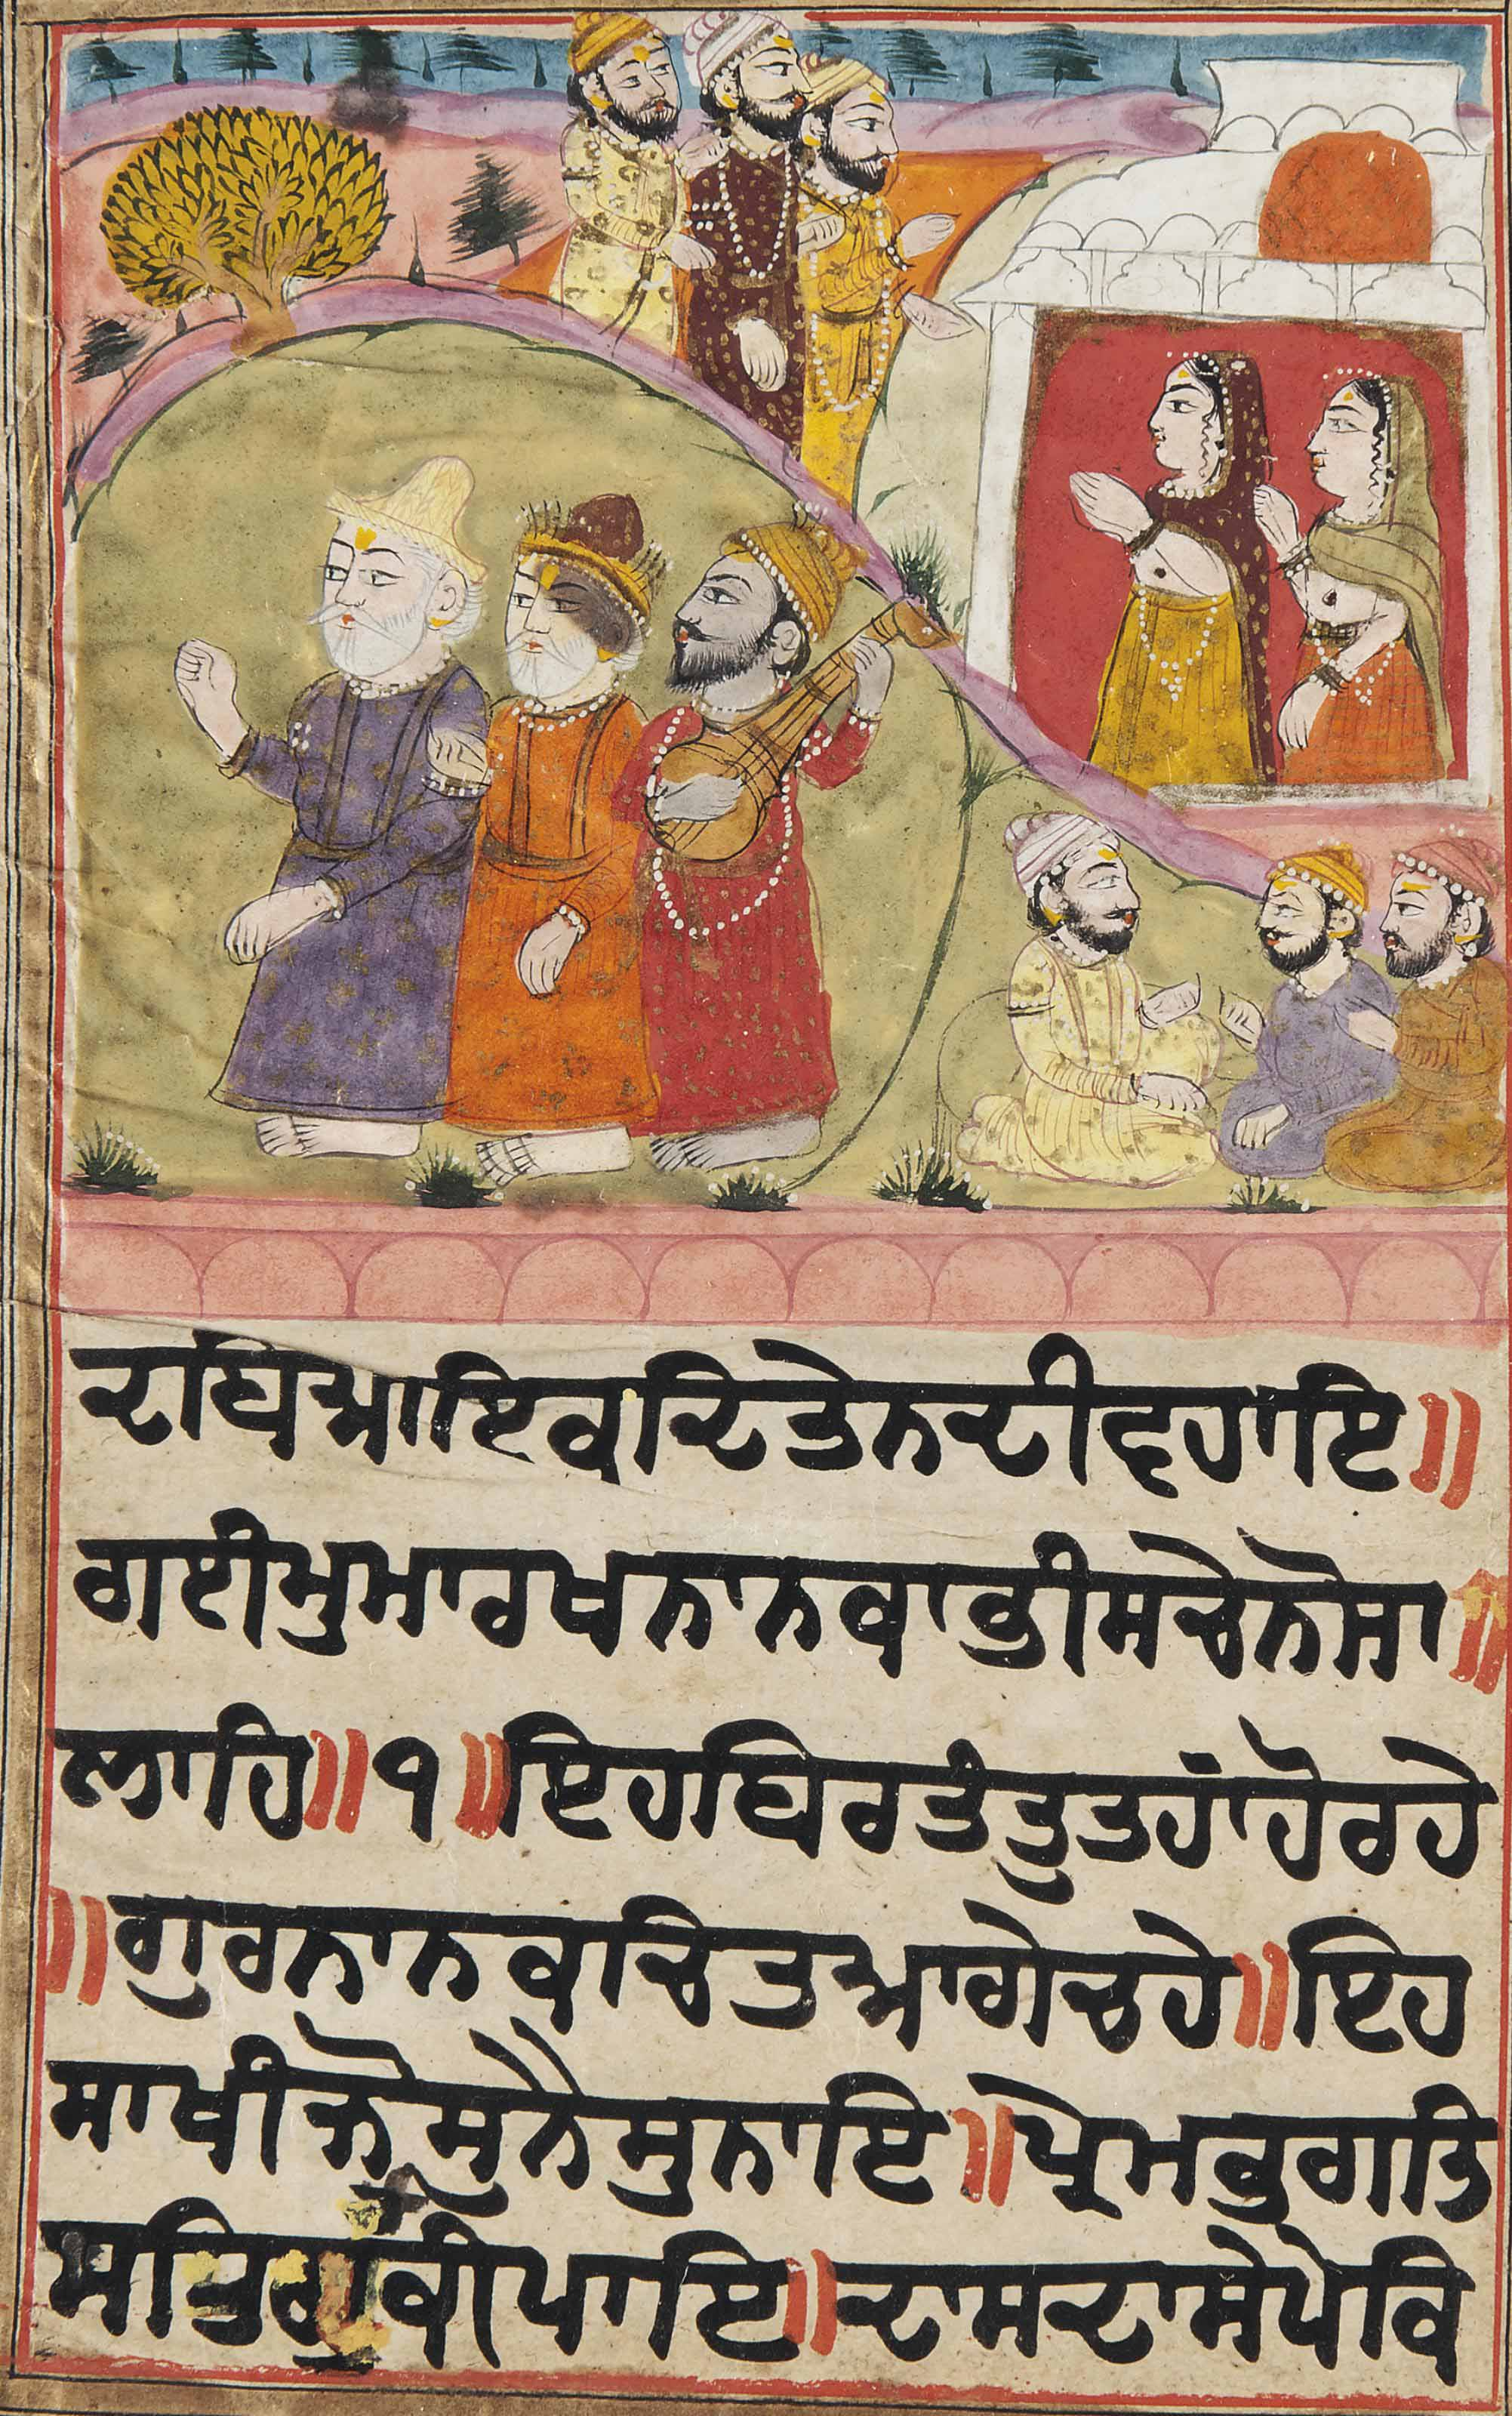 AN ILLUSTRATED FOLIO FROM A JANAMSAKHI MANUSCRIPT